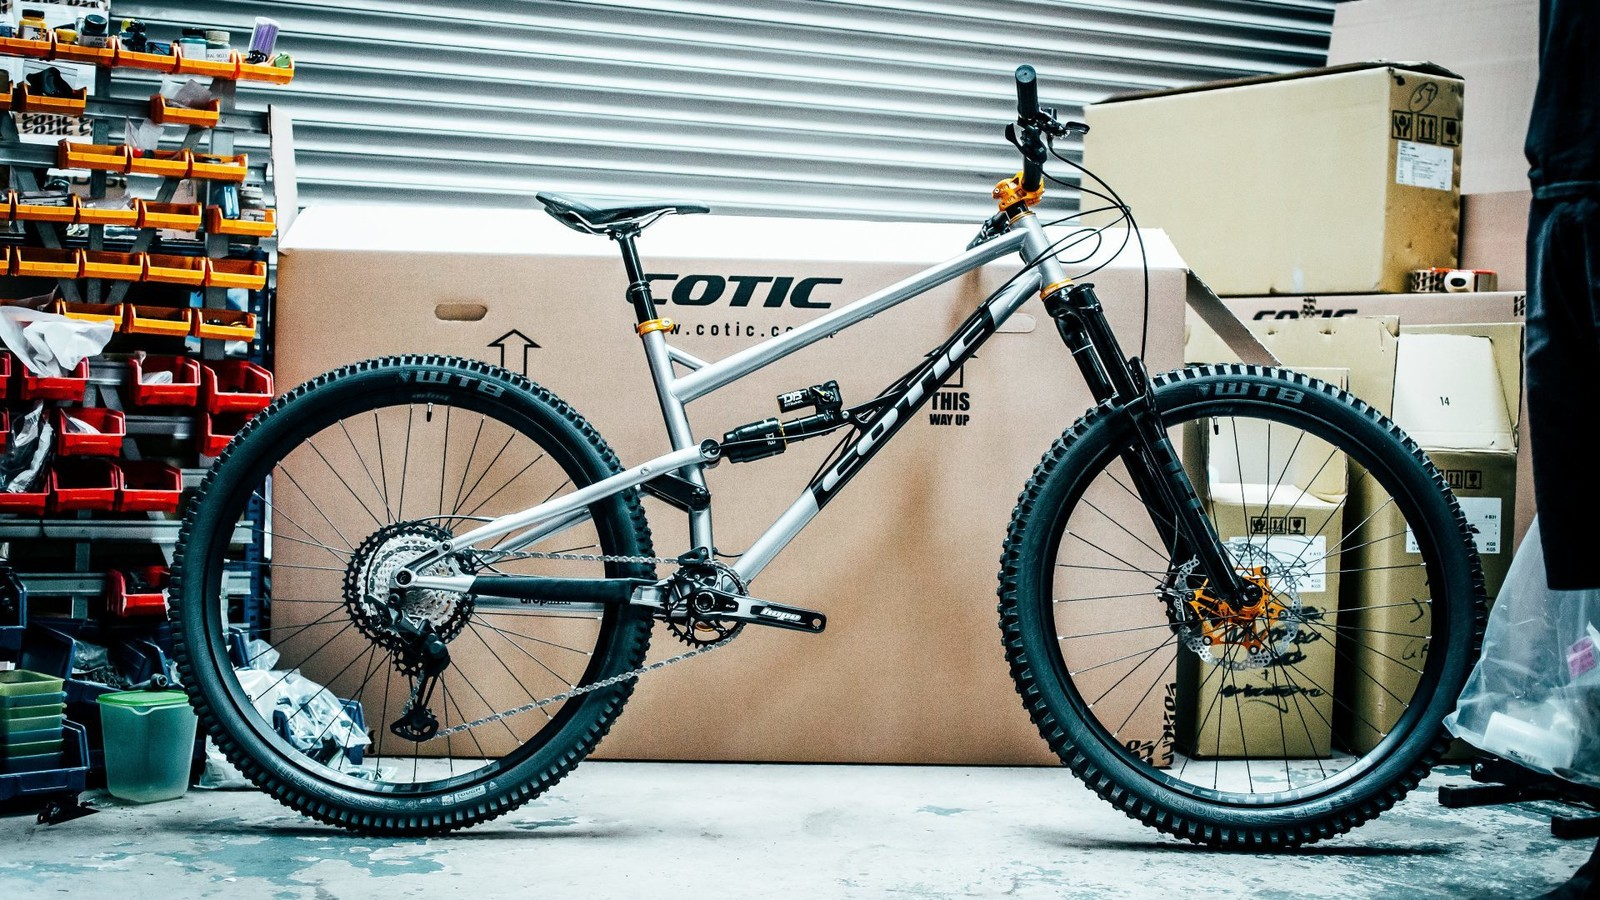 These Cotic Bikes Are In Stock Now